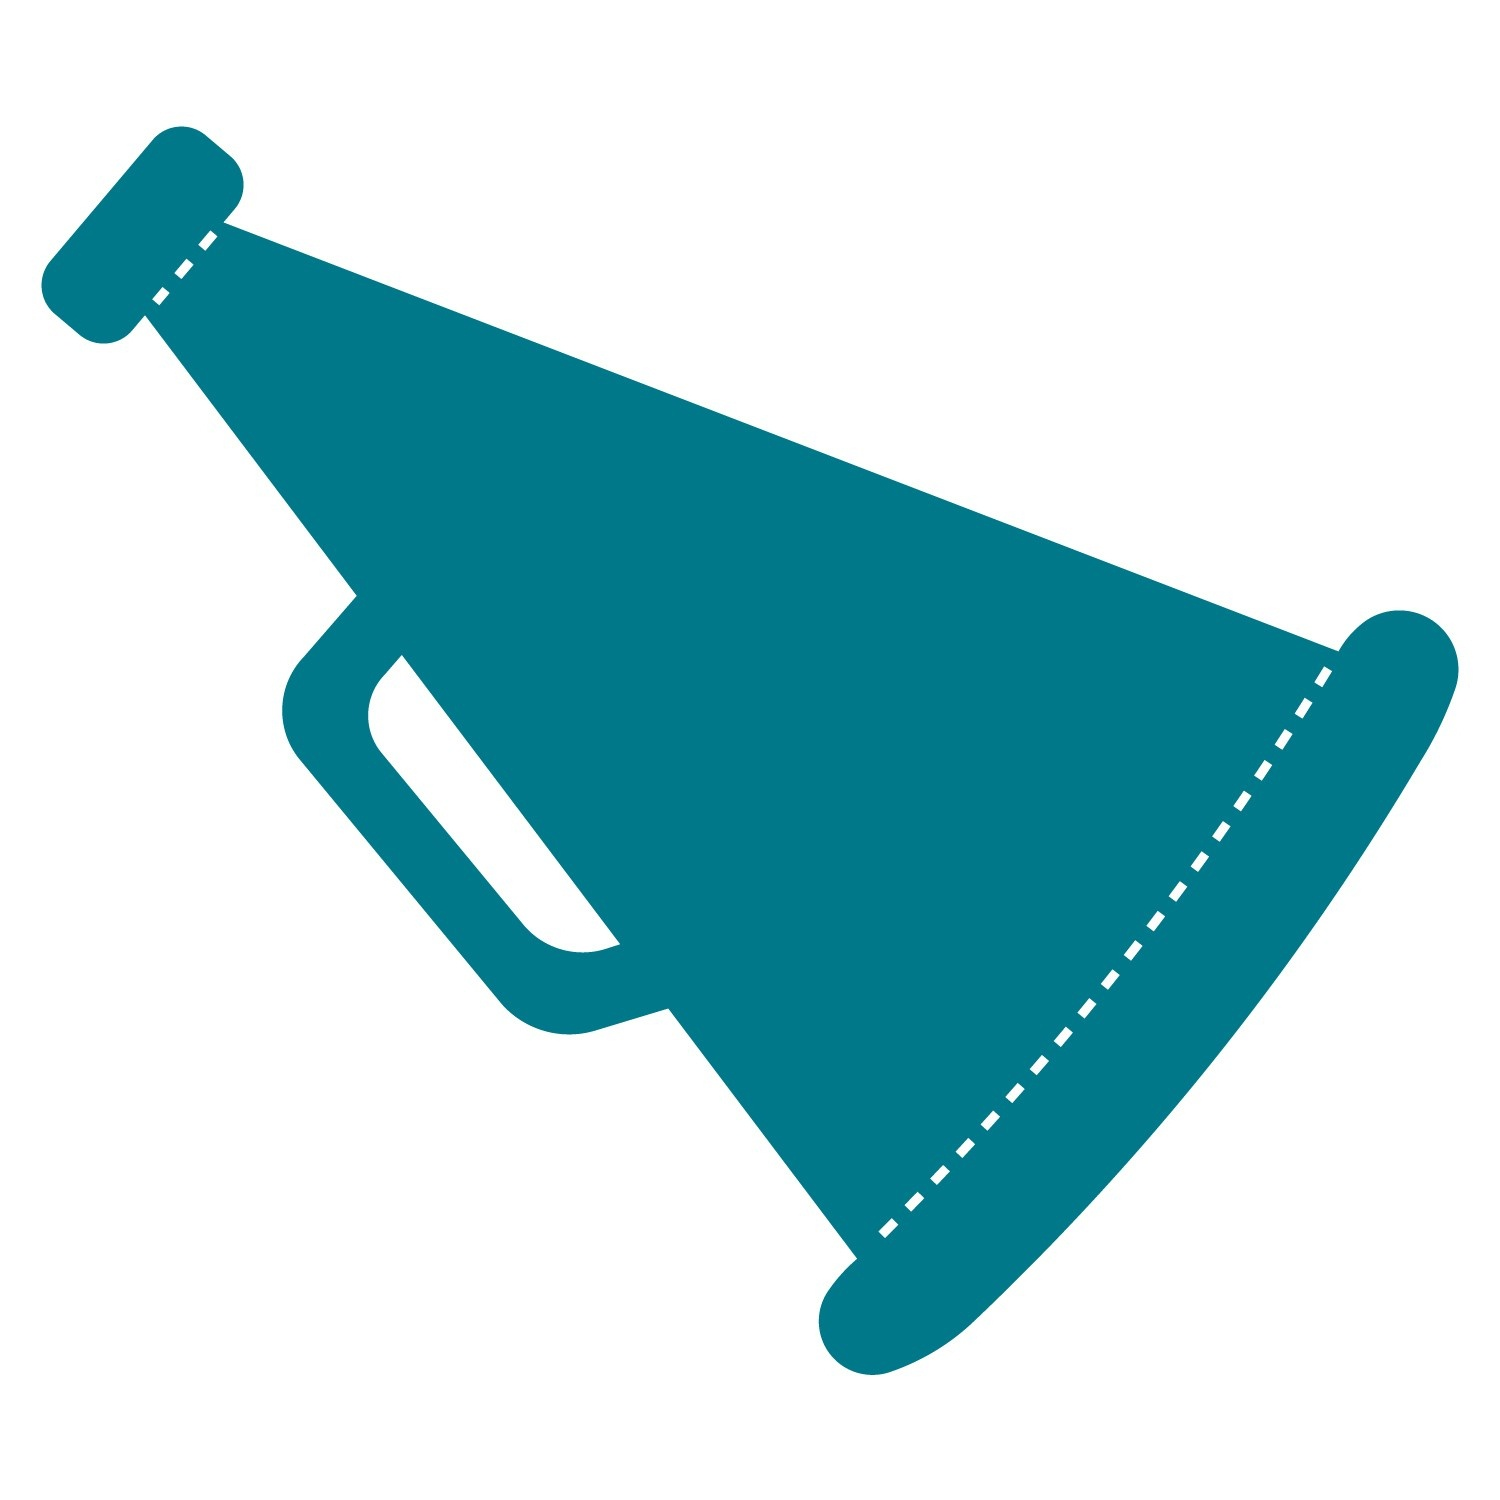 Cheer Megaphone Clipart | Free Download Best Cheer Megaphone Clipart - Free Printable Megaphone Template